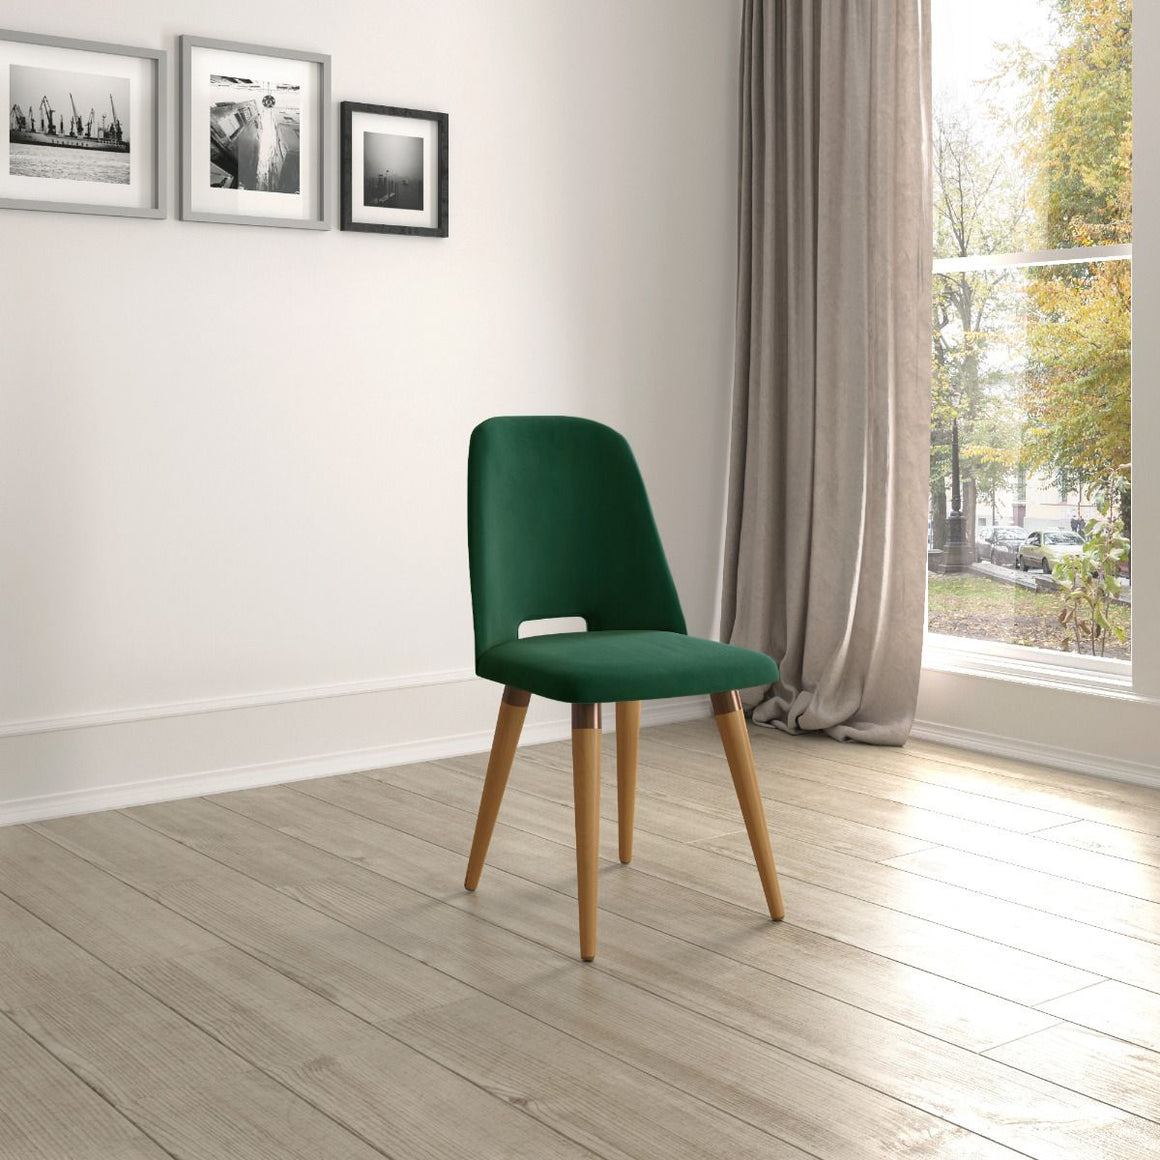 Selina Velvet Accent Chair in Green